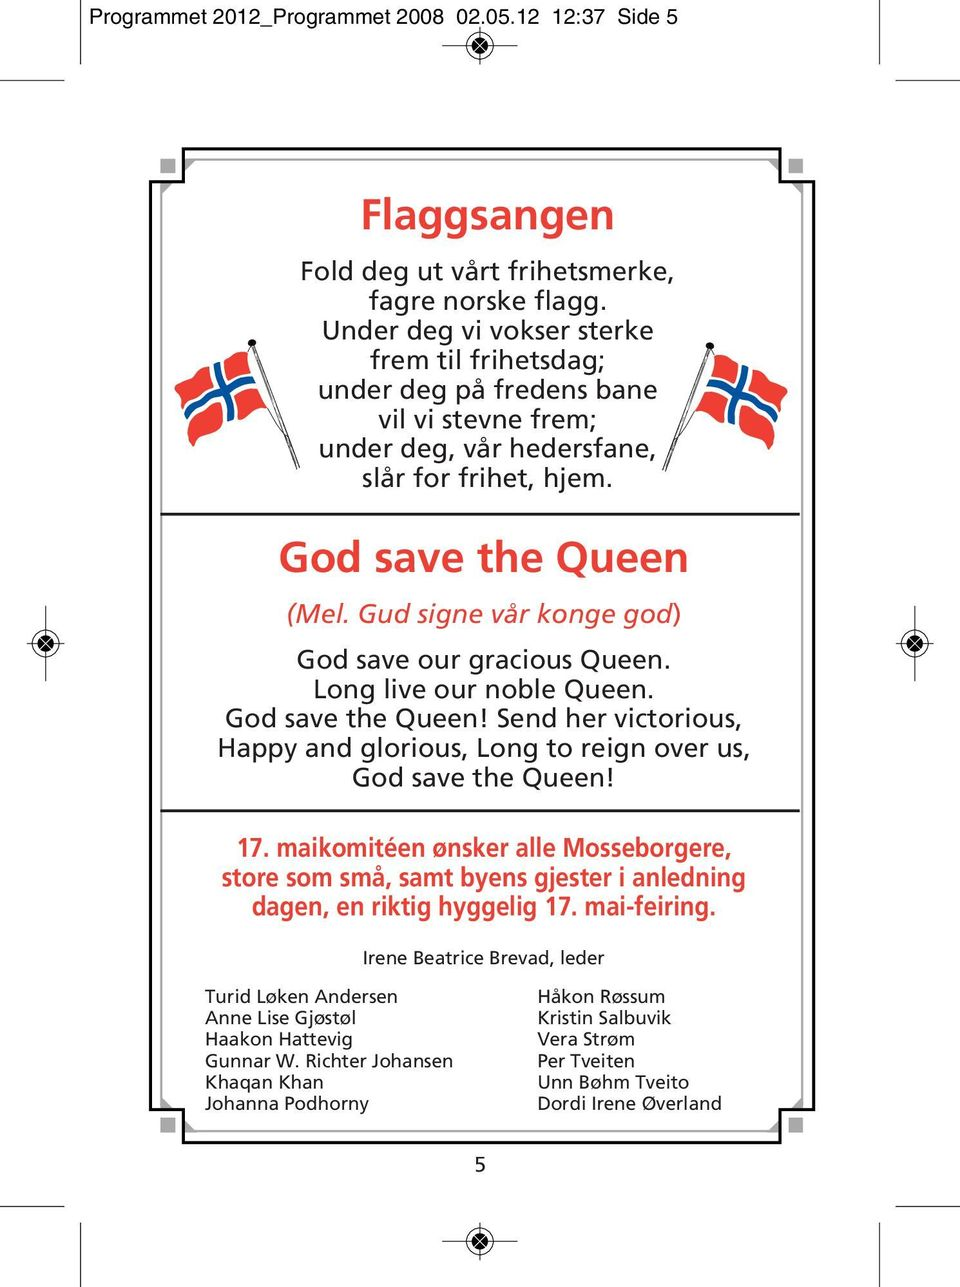 Gud signe vår konge god) God save our gracious Queen. Long live our noble Queen. God save the Queen! Send her victorious, Happy and glorious, Long to reign over us, God save the Queen! 17.